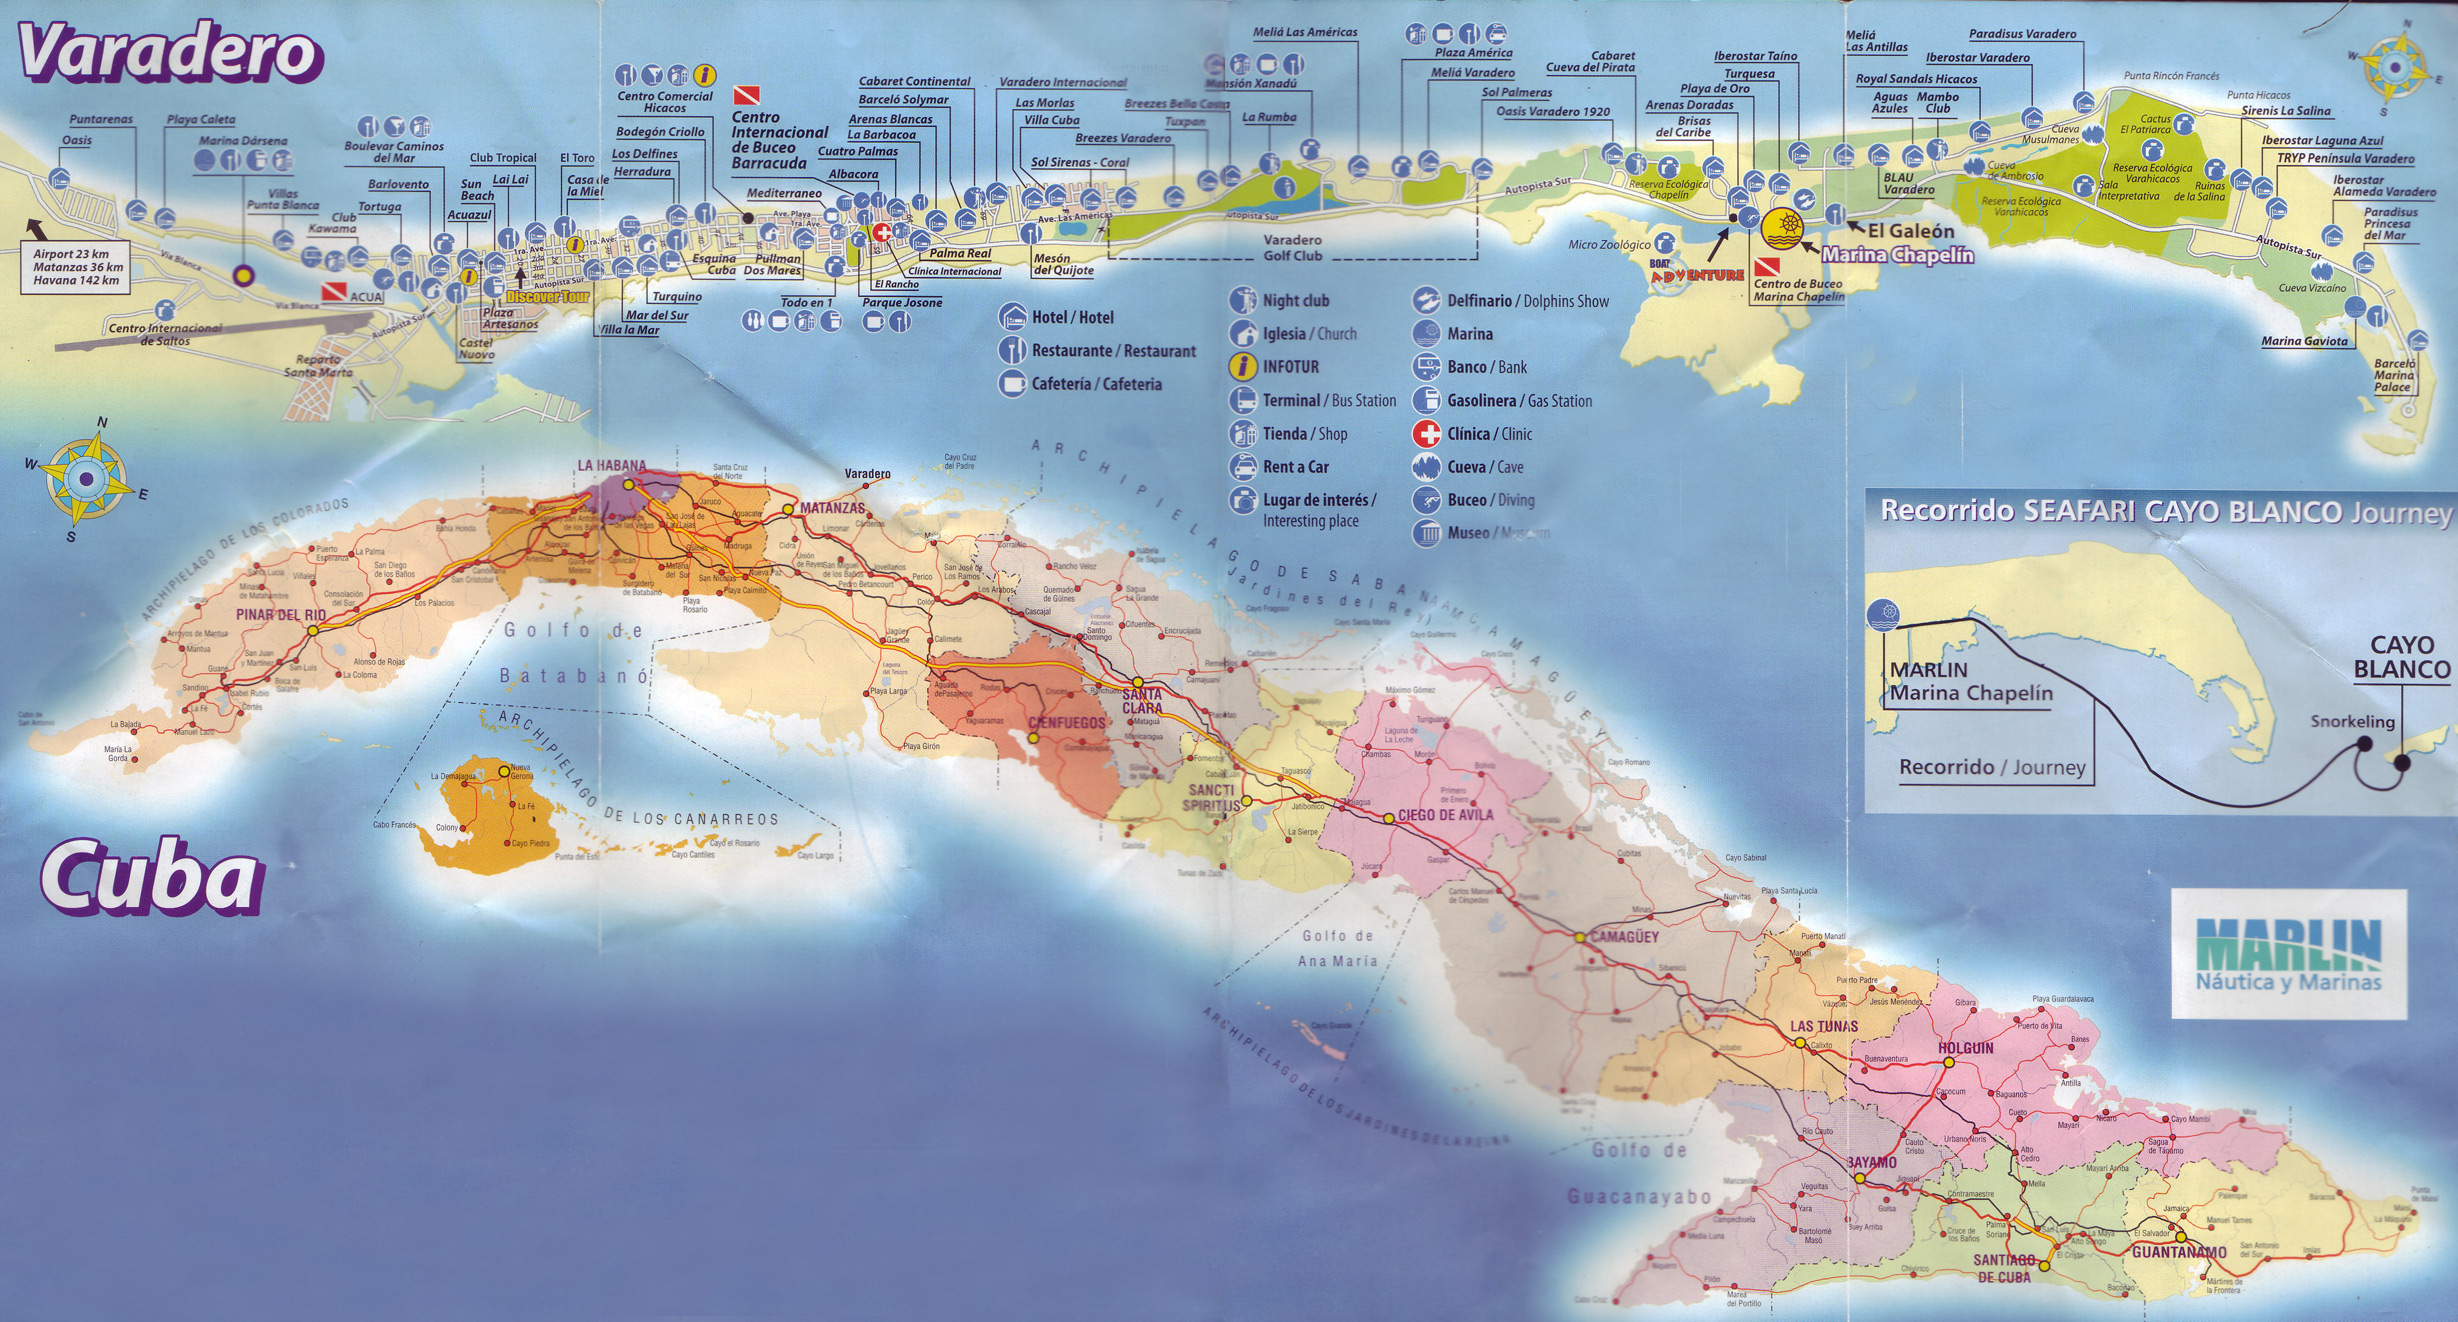 map of va cities with Mapa De Varadero Cuba on Mapa De Varadero Cuba further Westward Expansion 18601890 also West Virginia Base Map 47 as well Va ap additionally Chicago.